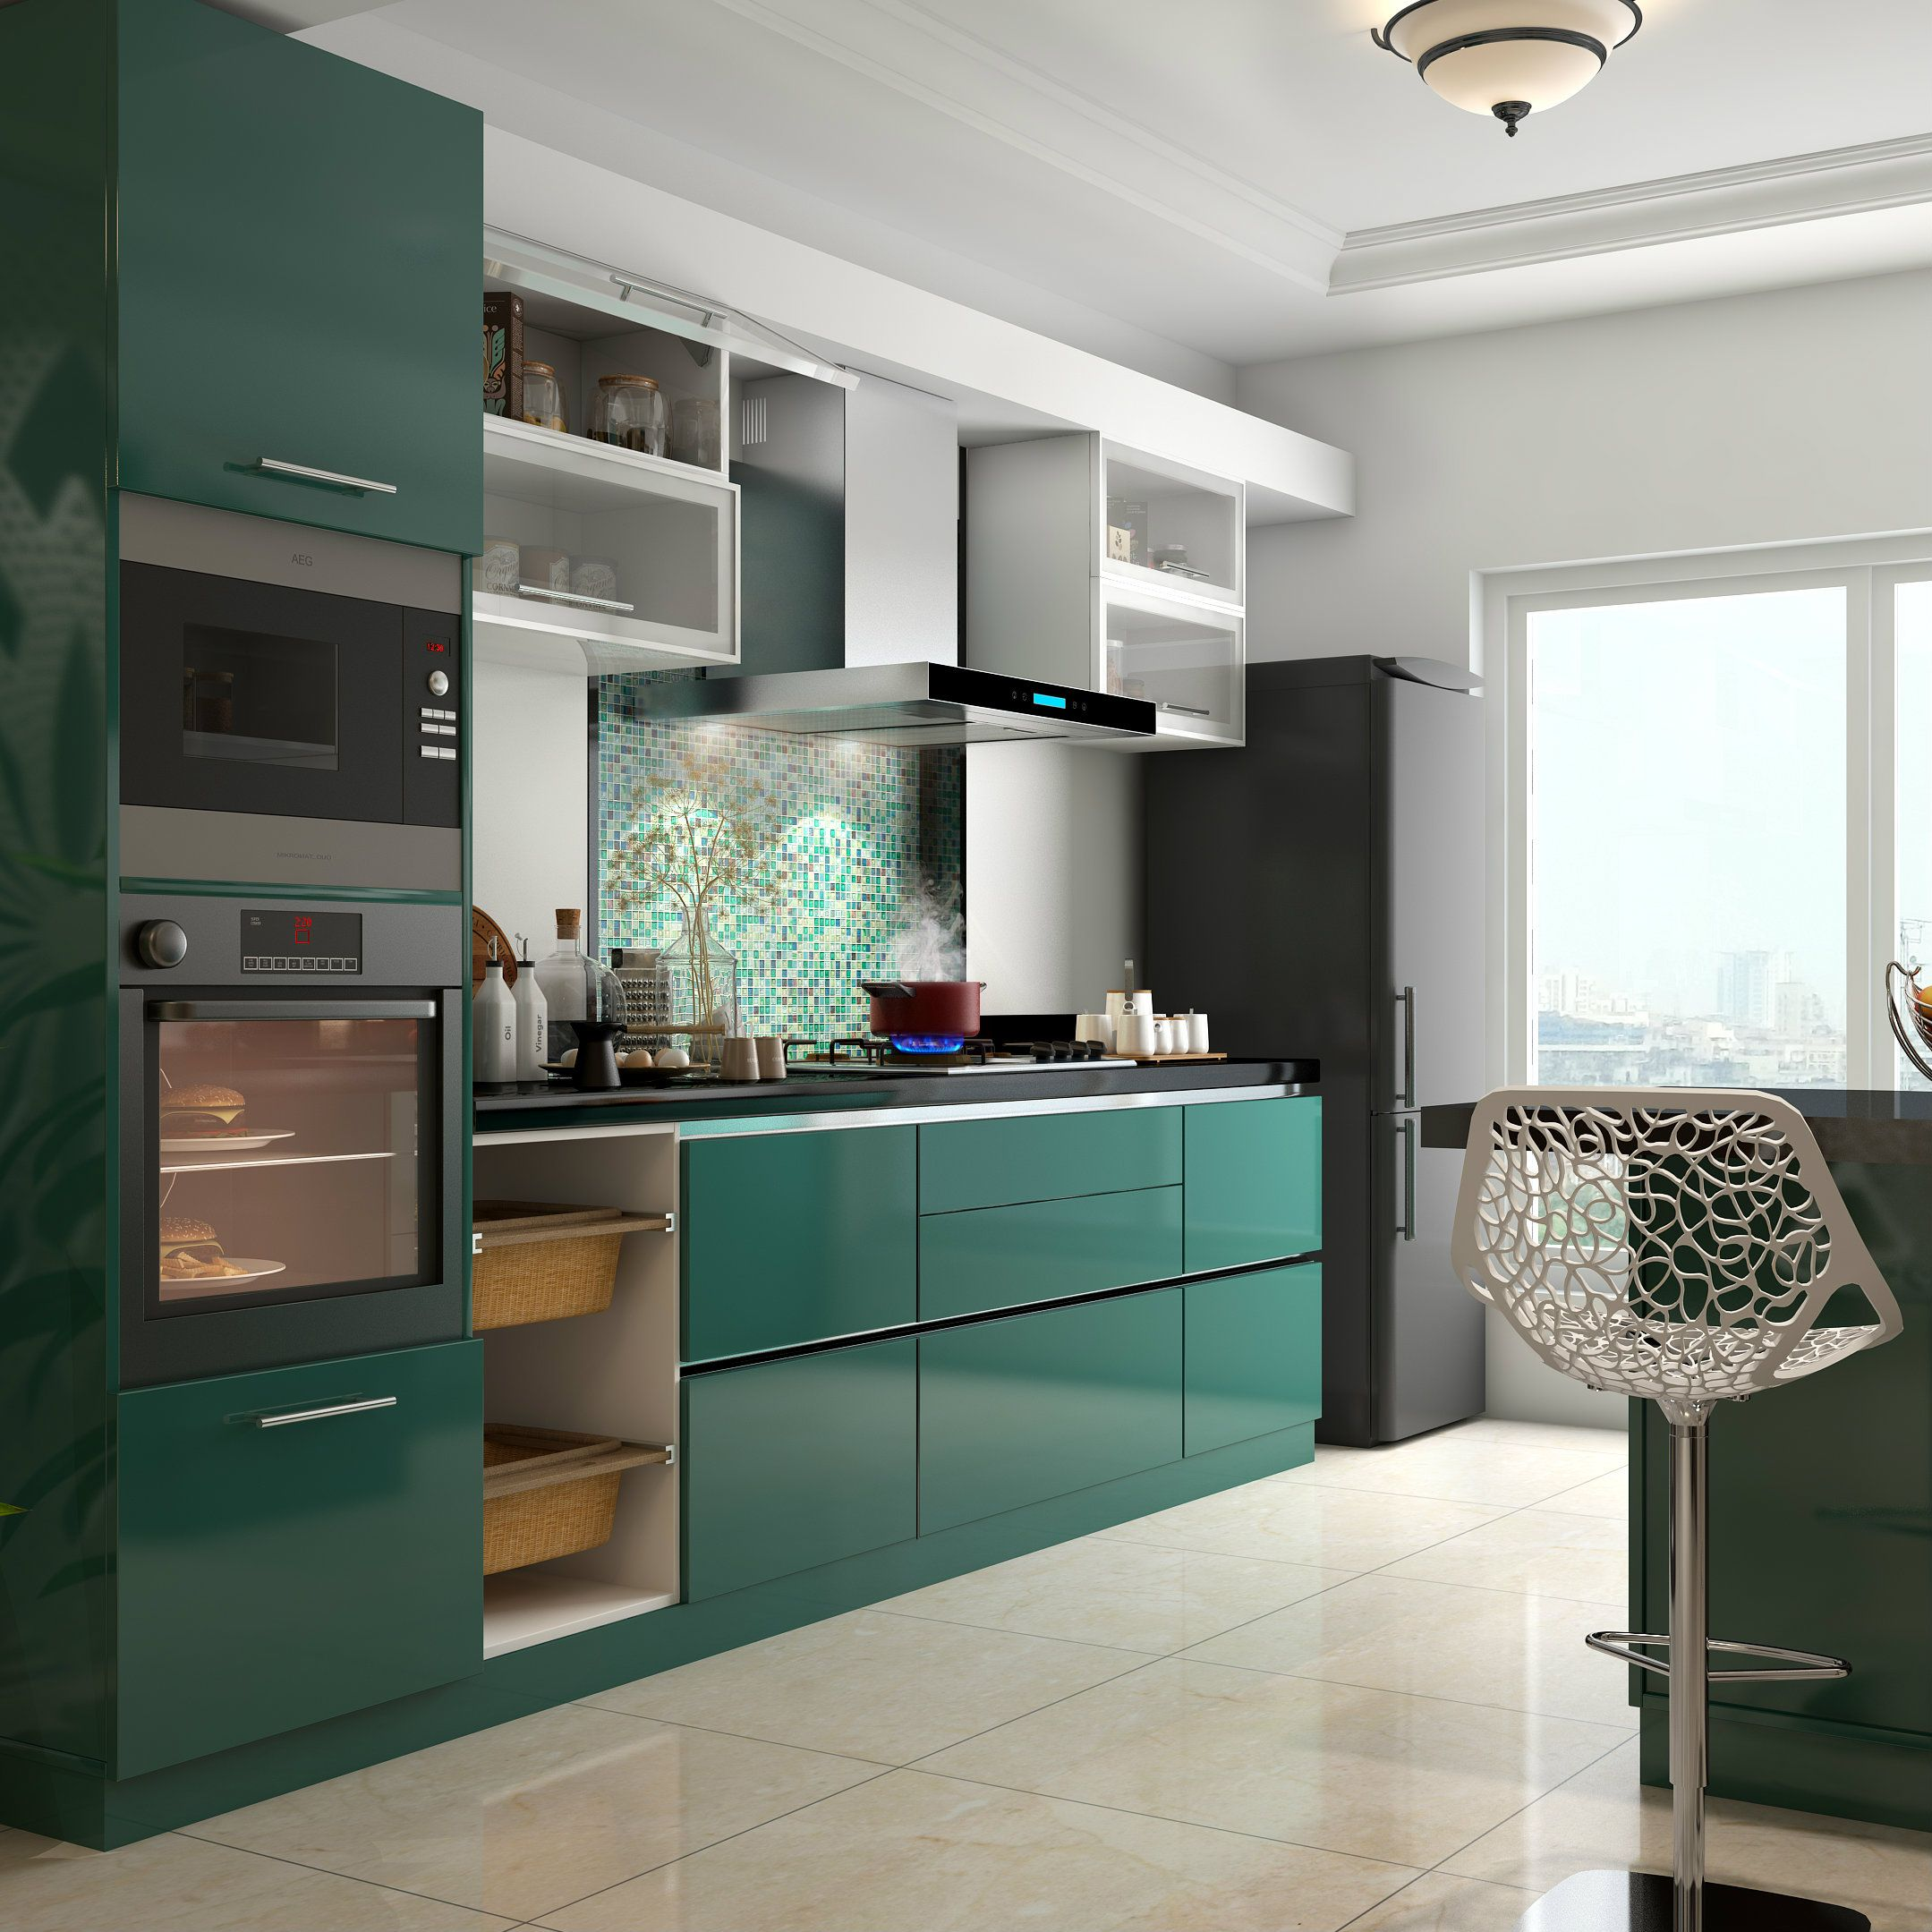 Modular Kitchen Interior Design Ideas ~ Glossy green cabinets infuse vitality to this kitchen